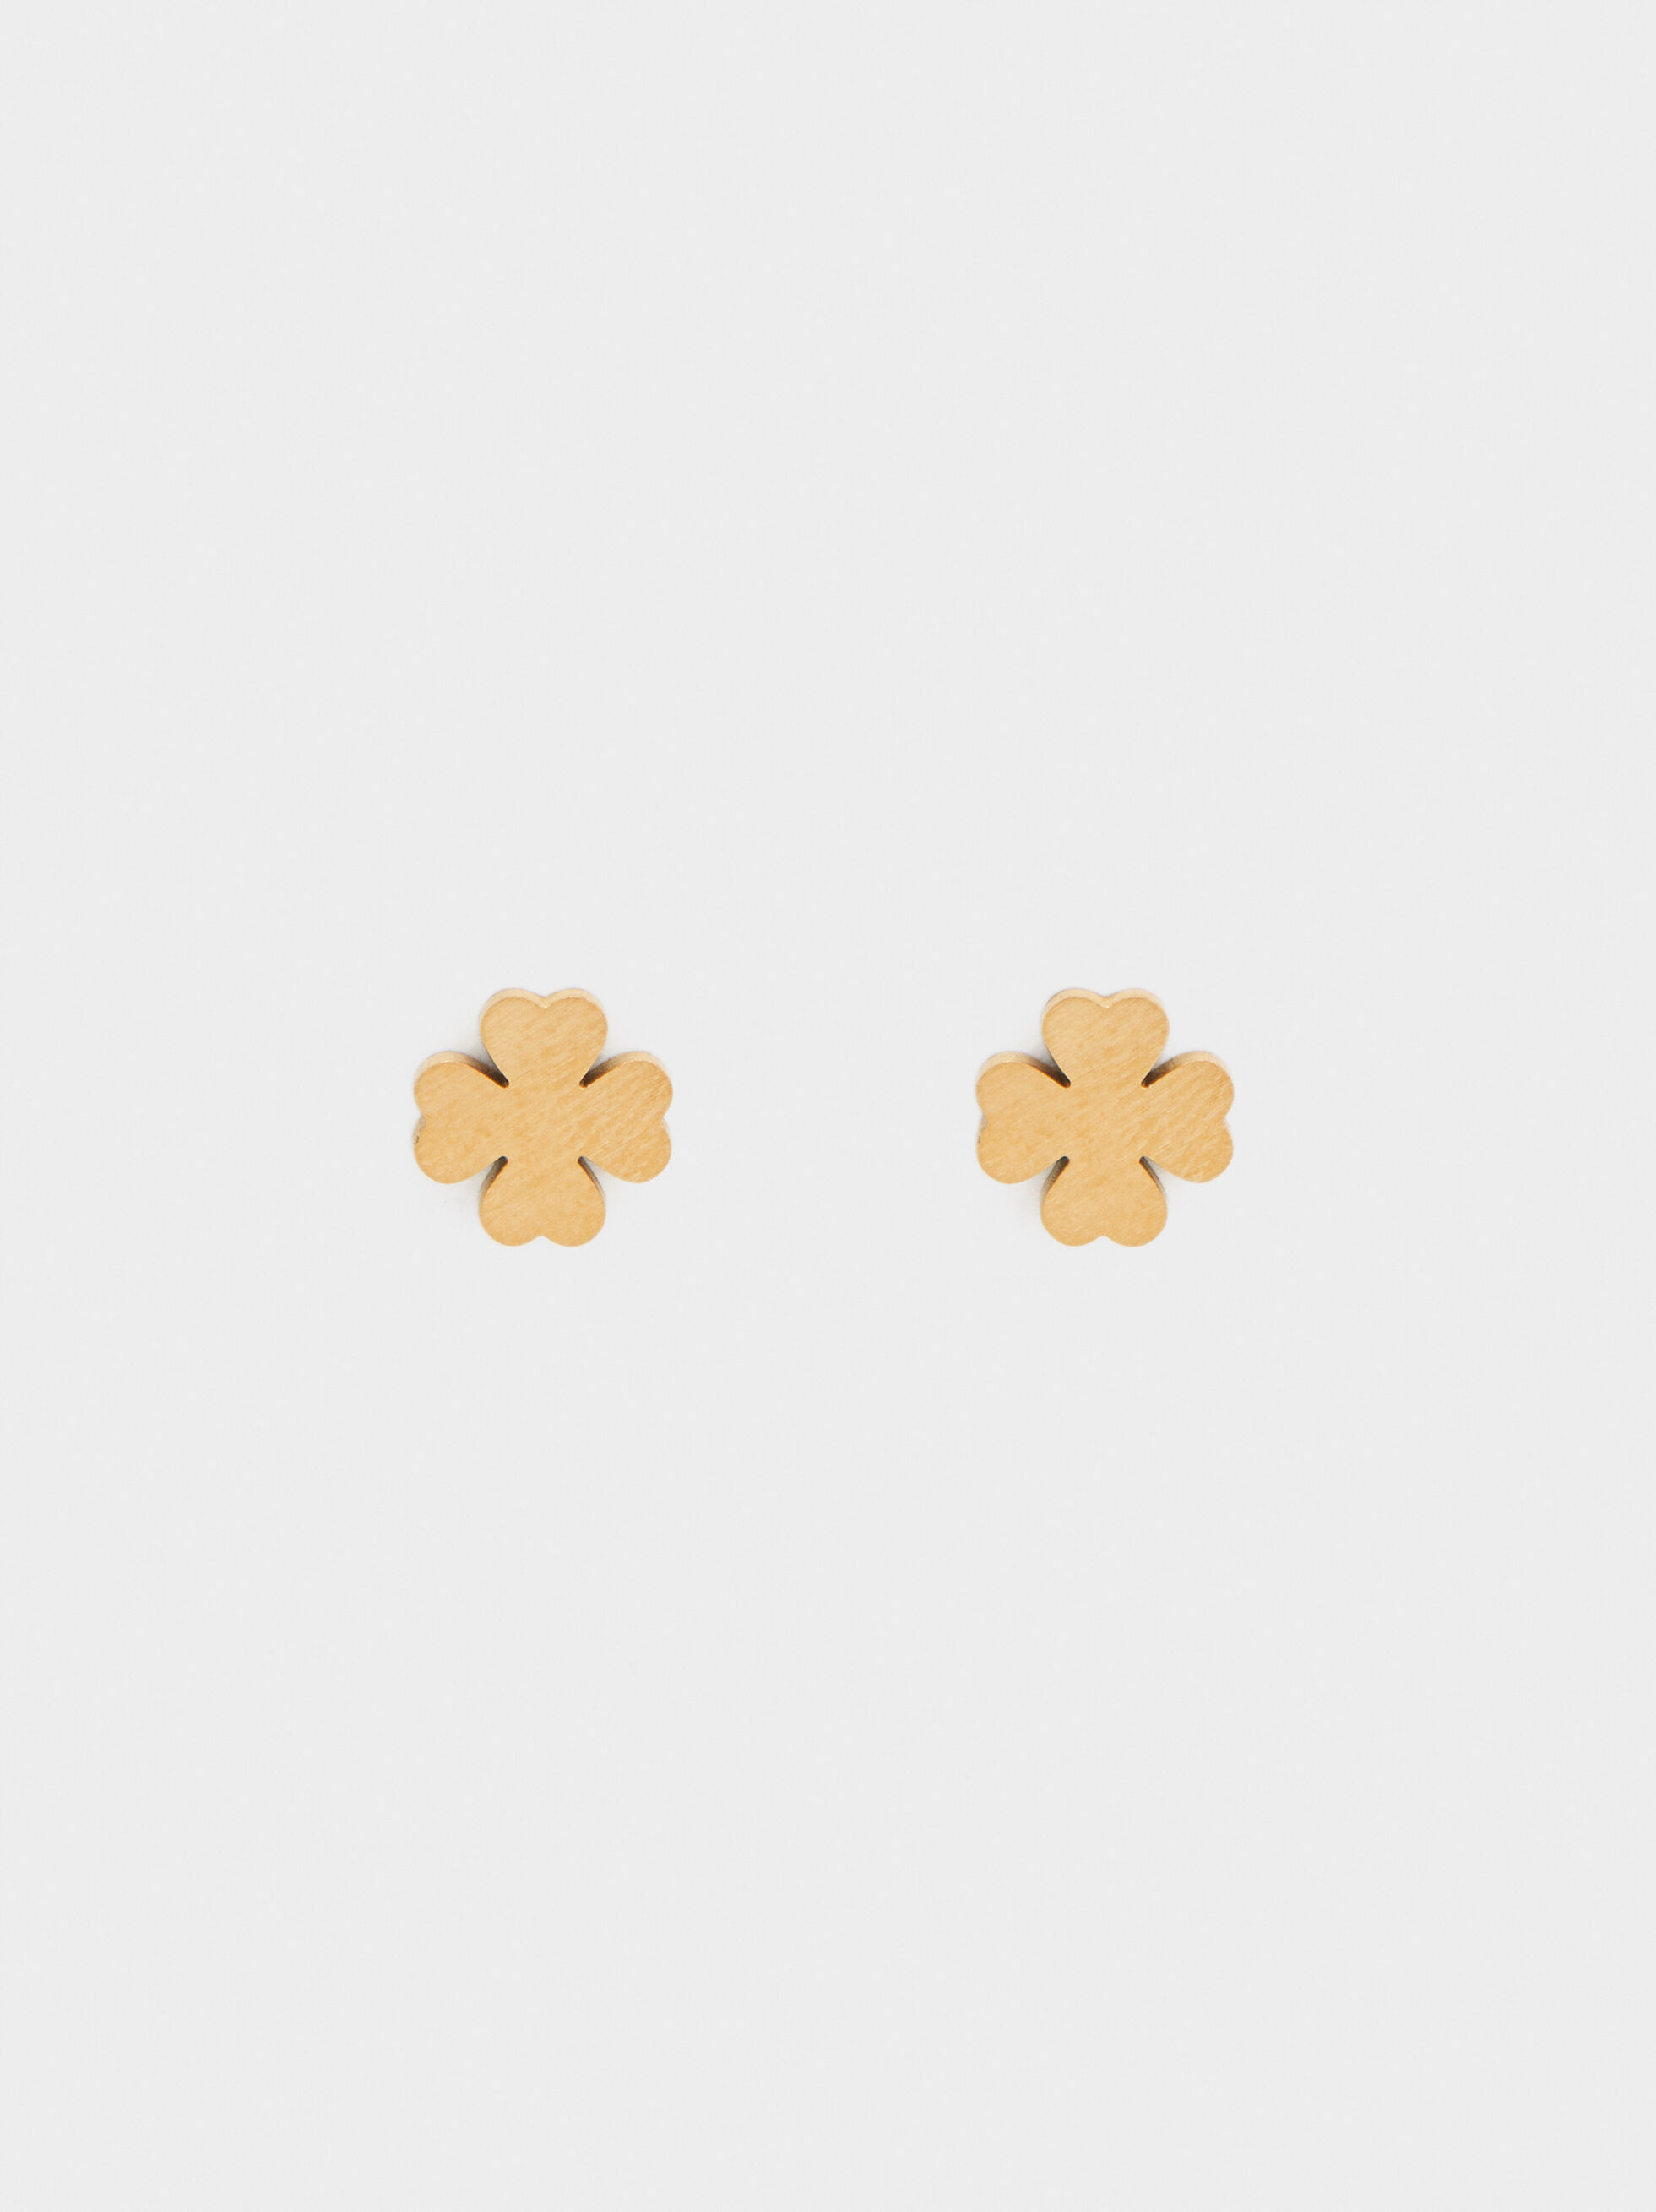 Short Gold Stainless Steel Earrings With Shamrock Detail, , hi-res